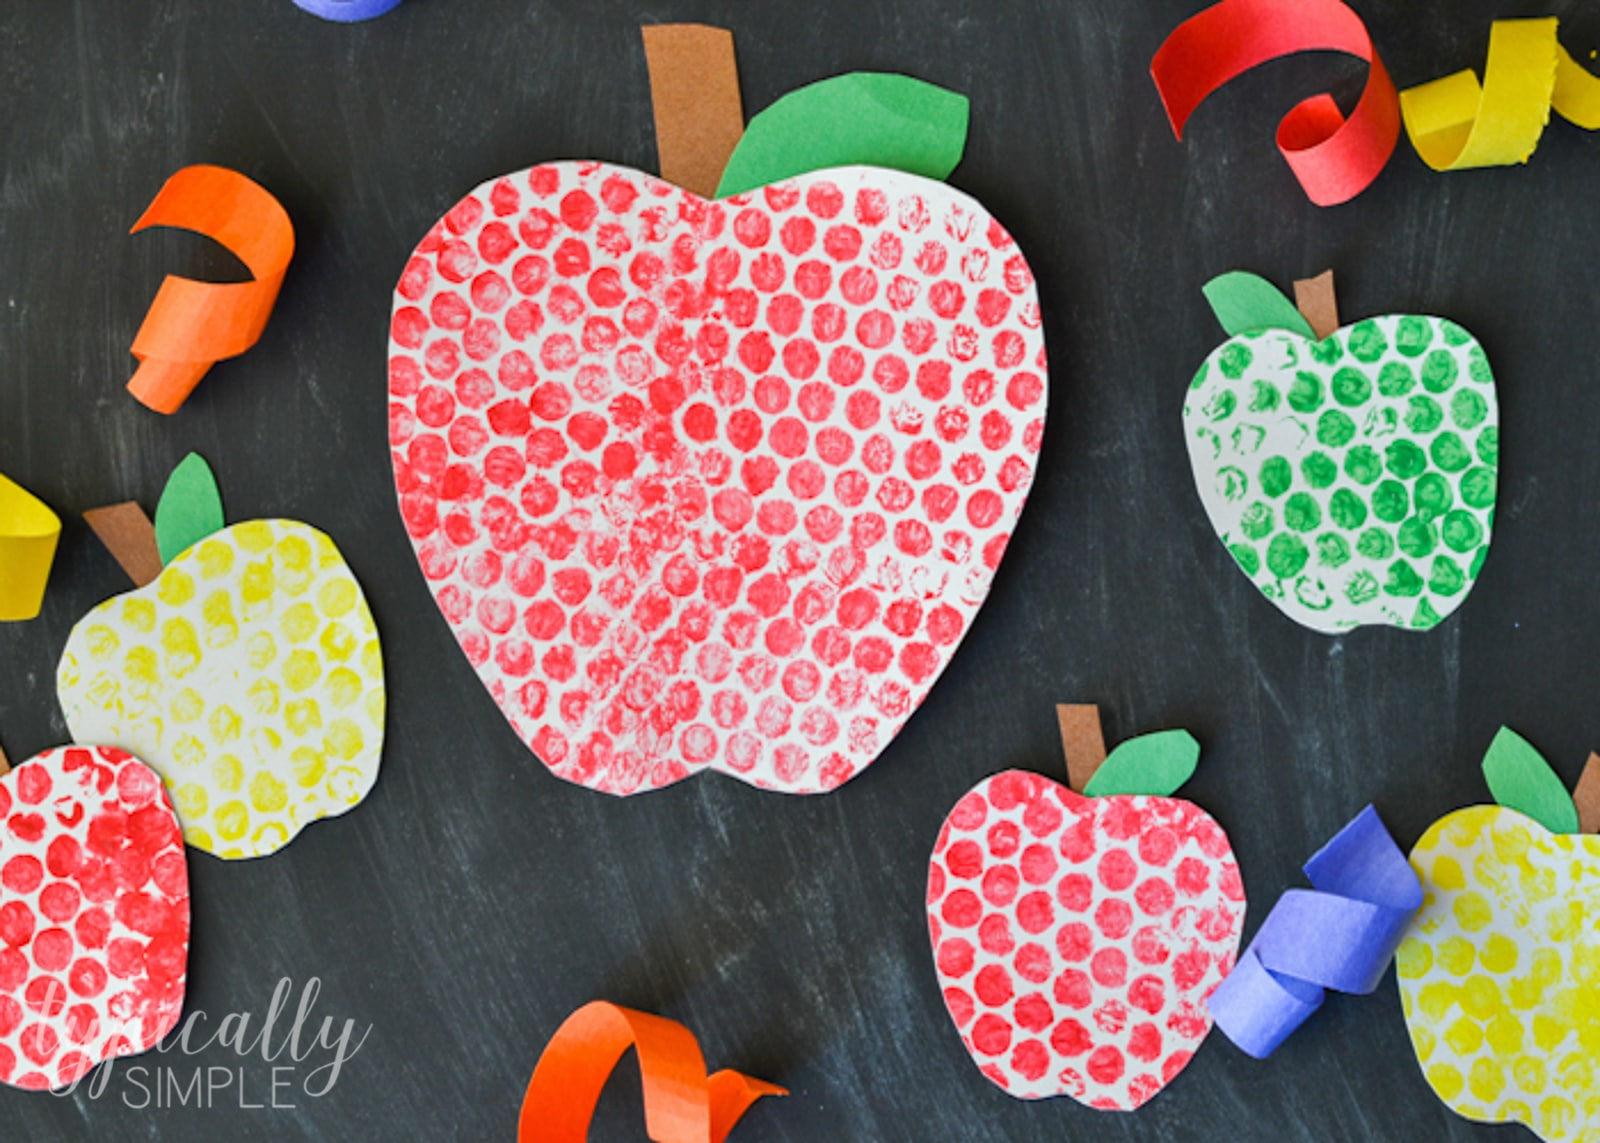 Paint with this unique tool and easily create a fun effect for your fall apple craft. Shhh... its bubble wrap! Here you will find cute and simple apple crafts for kids, toddlers and preschoolers. #applecraft #fallcrafts #fallcraftsforkids #autumncrafts #preschoolcrafts #howweelearn